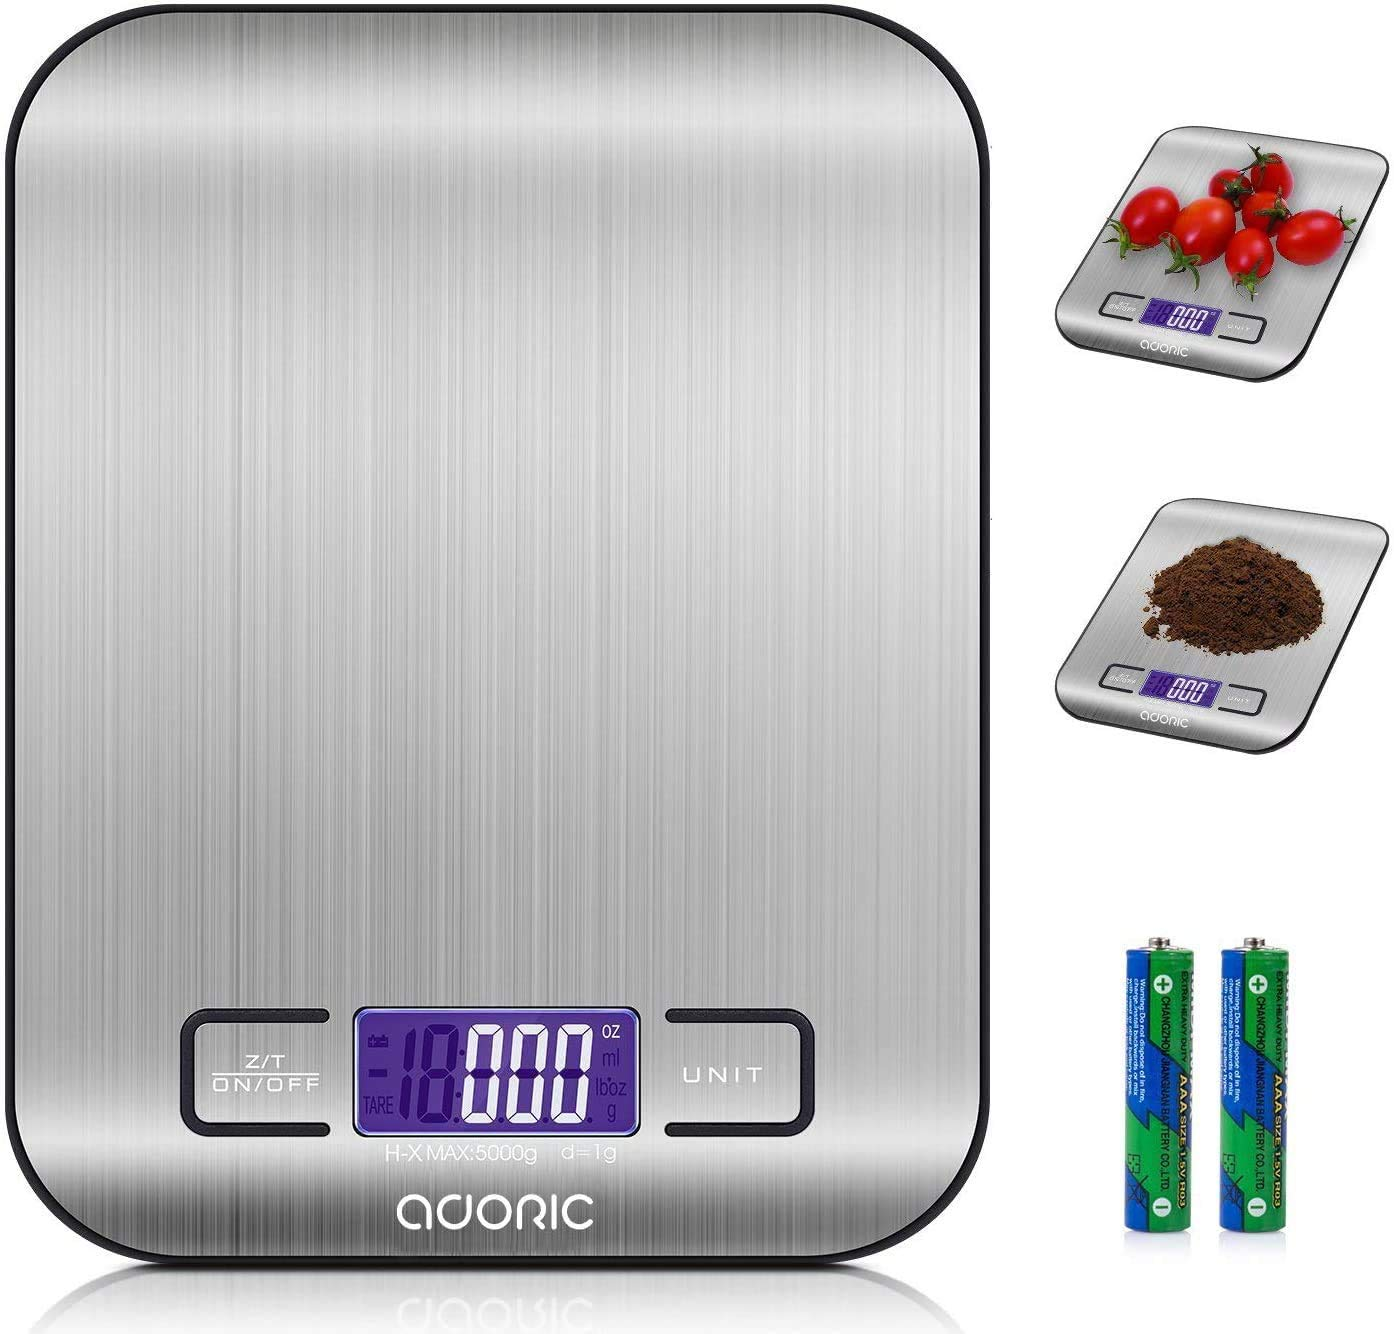 ADORIC Digital Scale Professional Electronic Scale, Kitchen Scale with LCD Display-Wonderful Precision up to 1g (5kg Maximum Weight) -Silvery